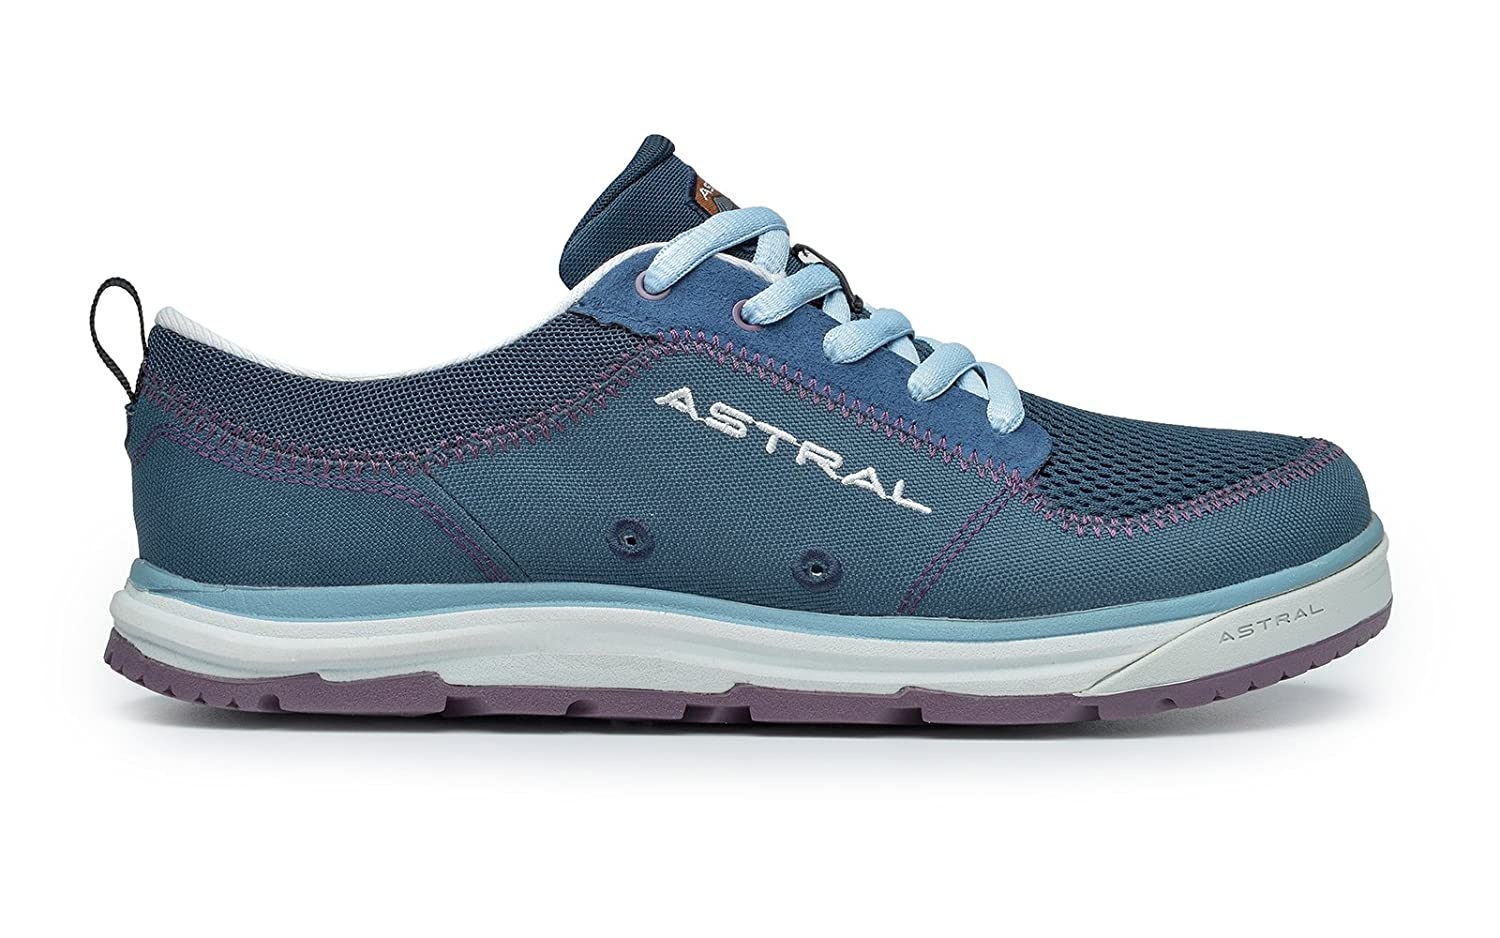 Astral Brewess 2.0 Women's Water Shoe B079C34QC3 9.5|Deep Water Navy